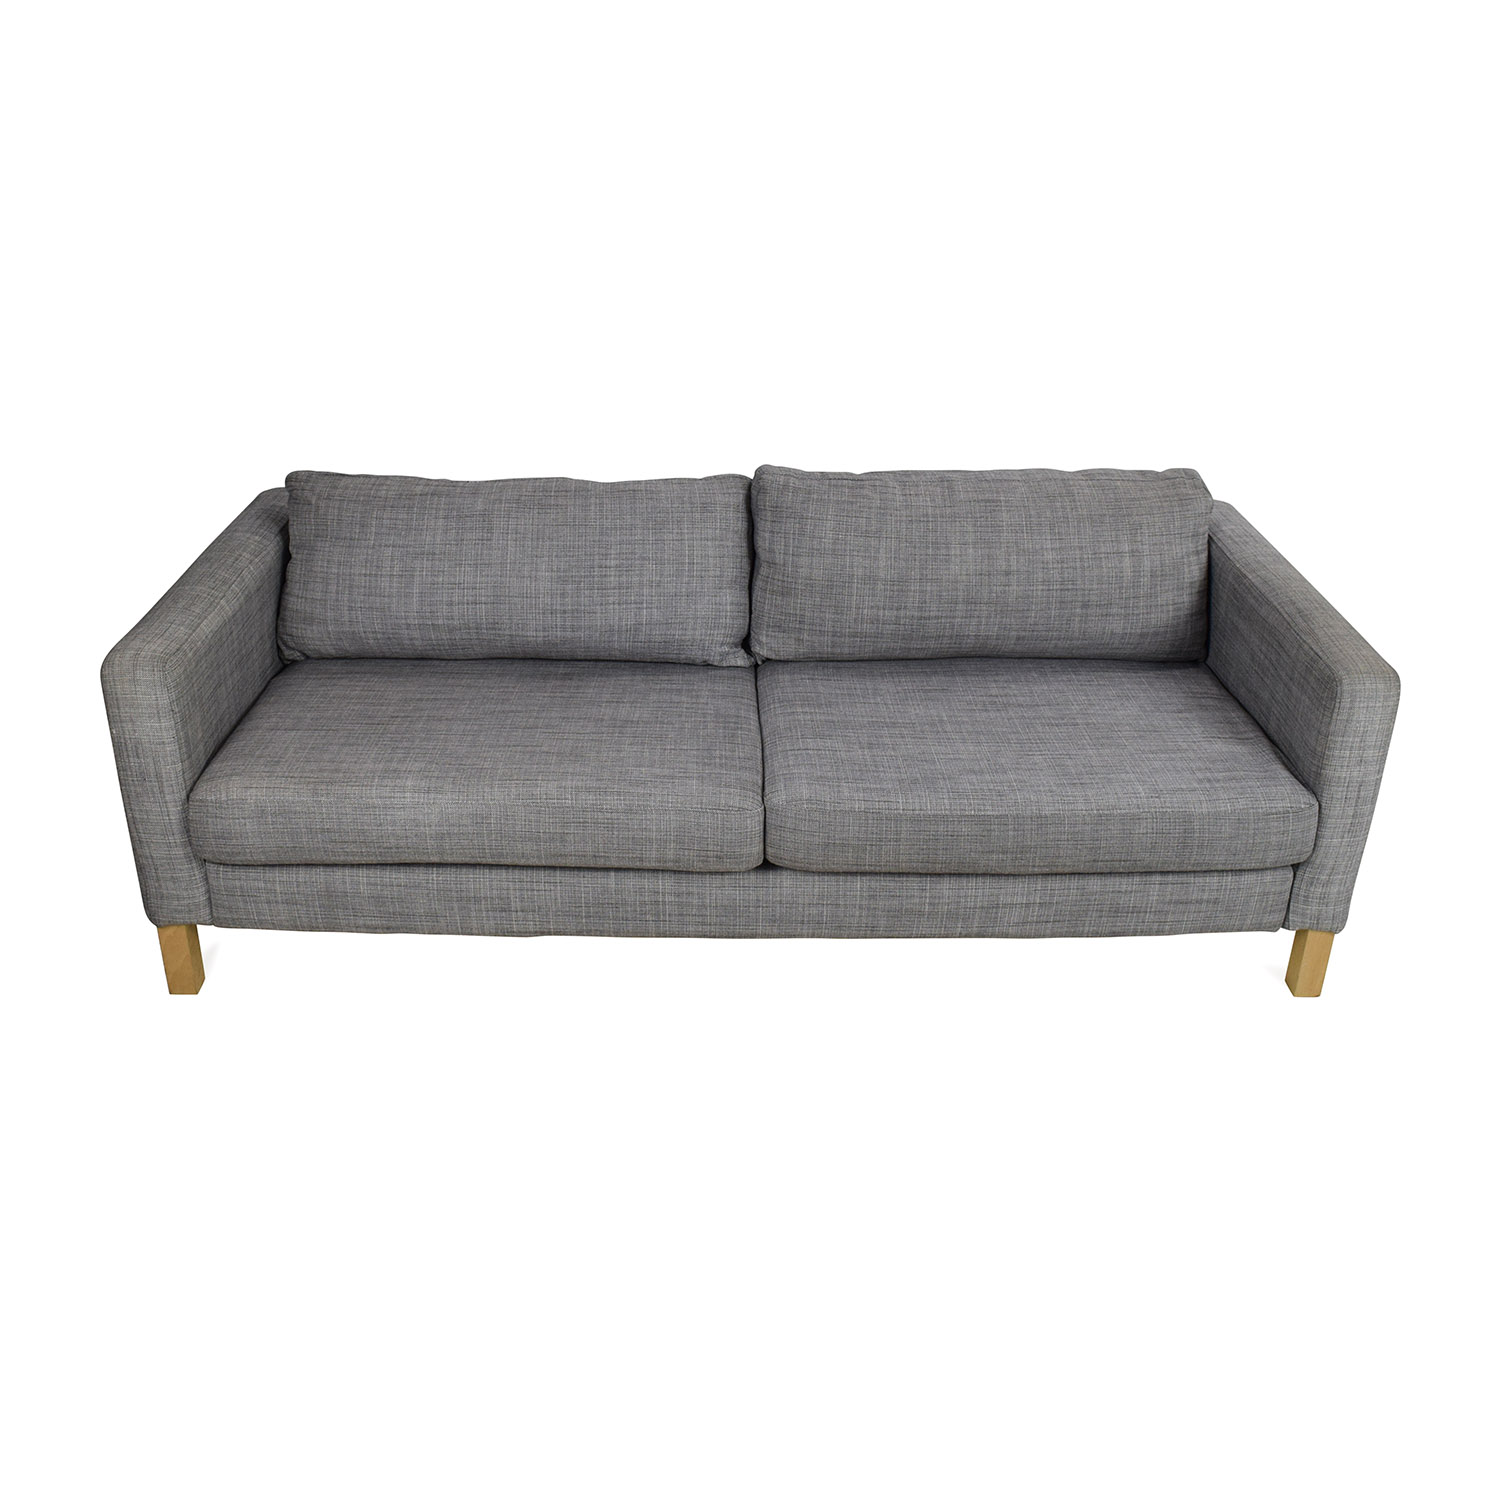 Shop Ikea Karlstad Sofa Quality Used Furniture